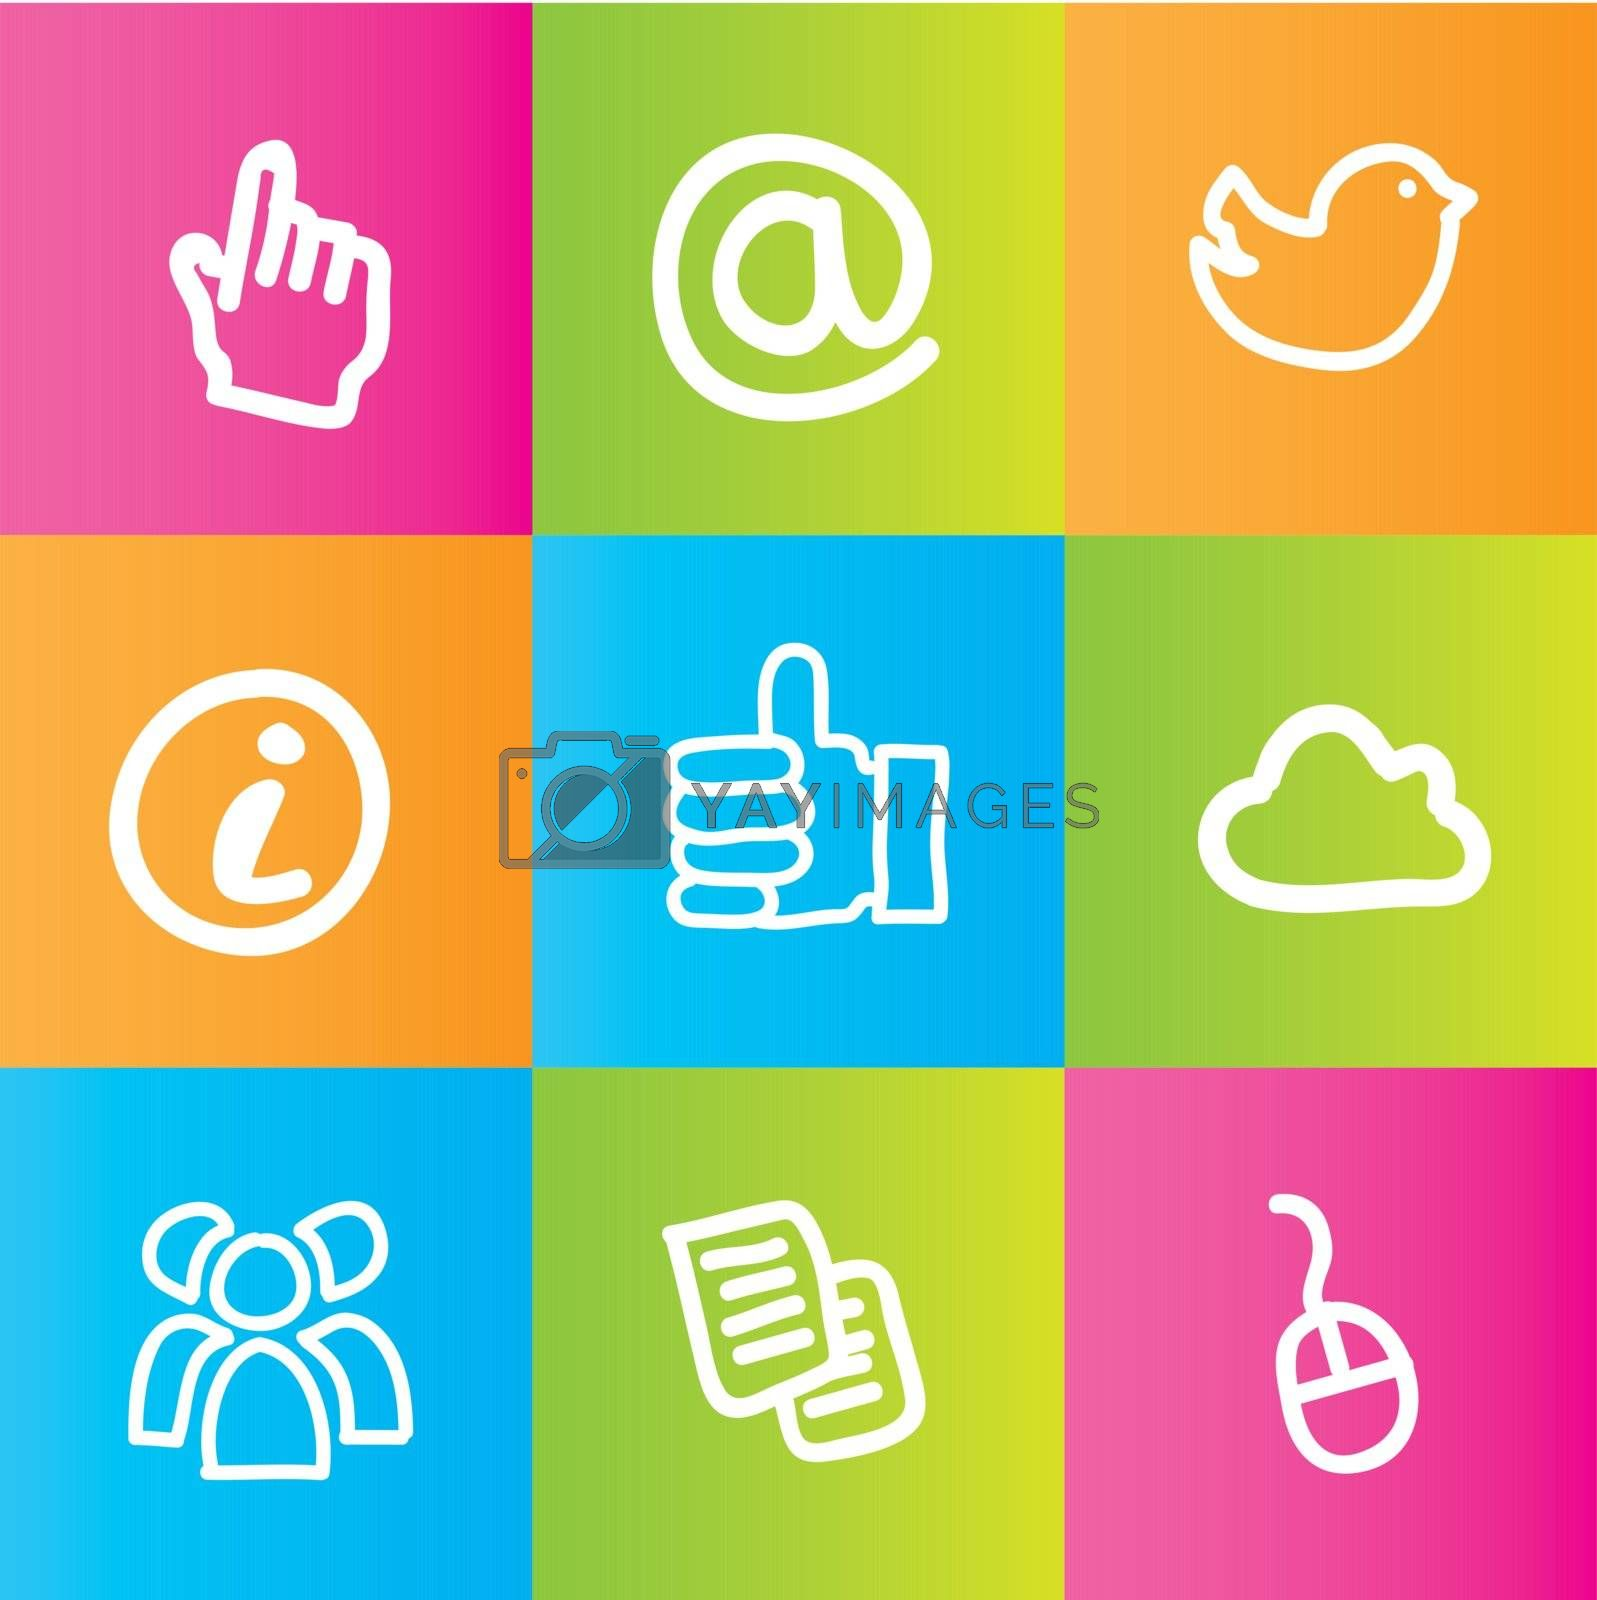 Communications icons over colors background vector illustration